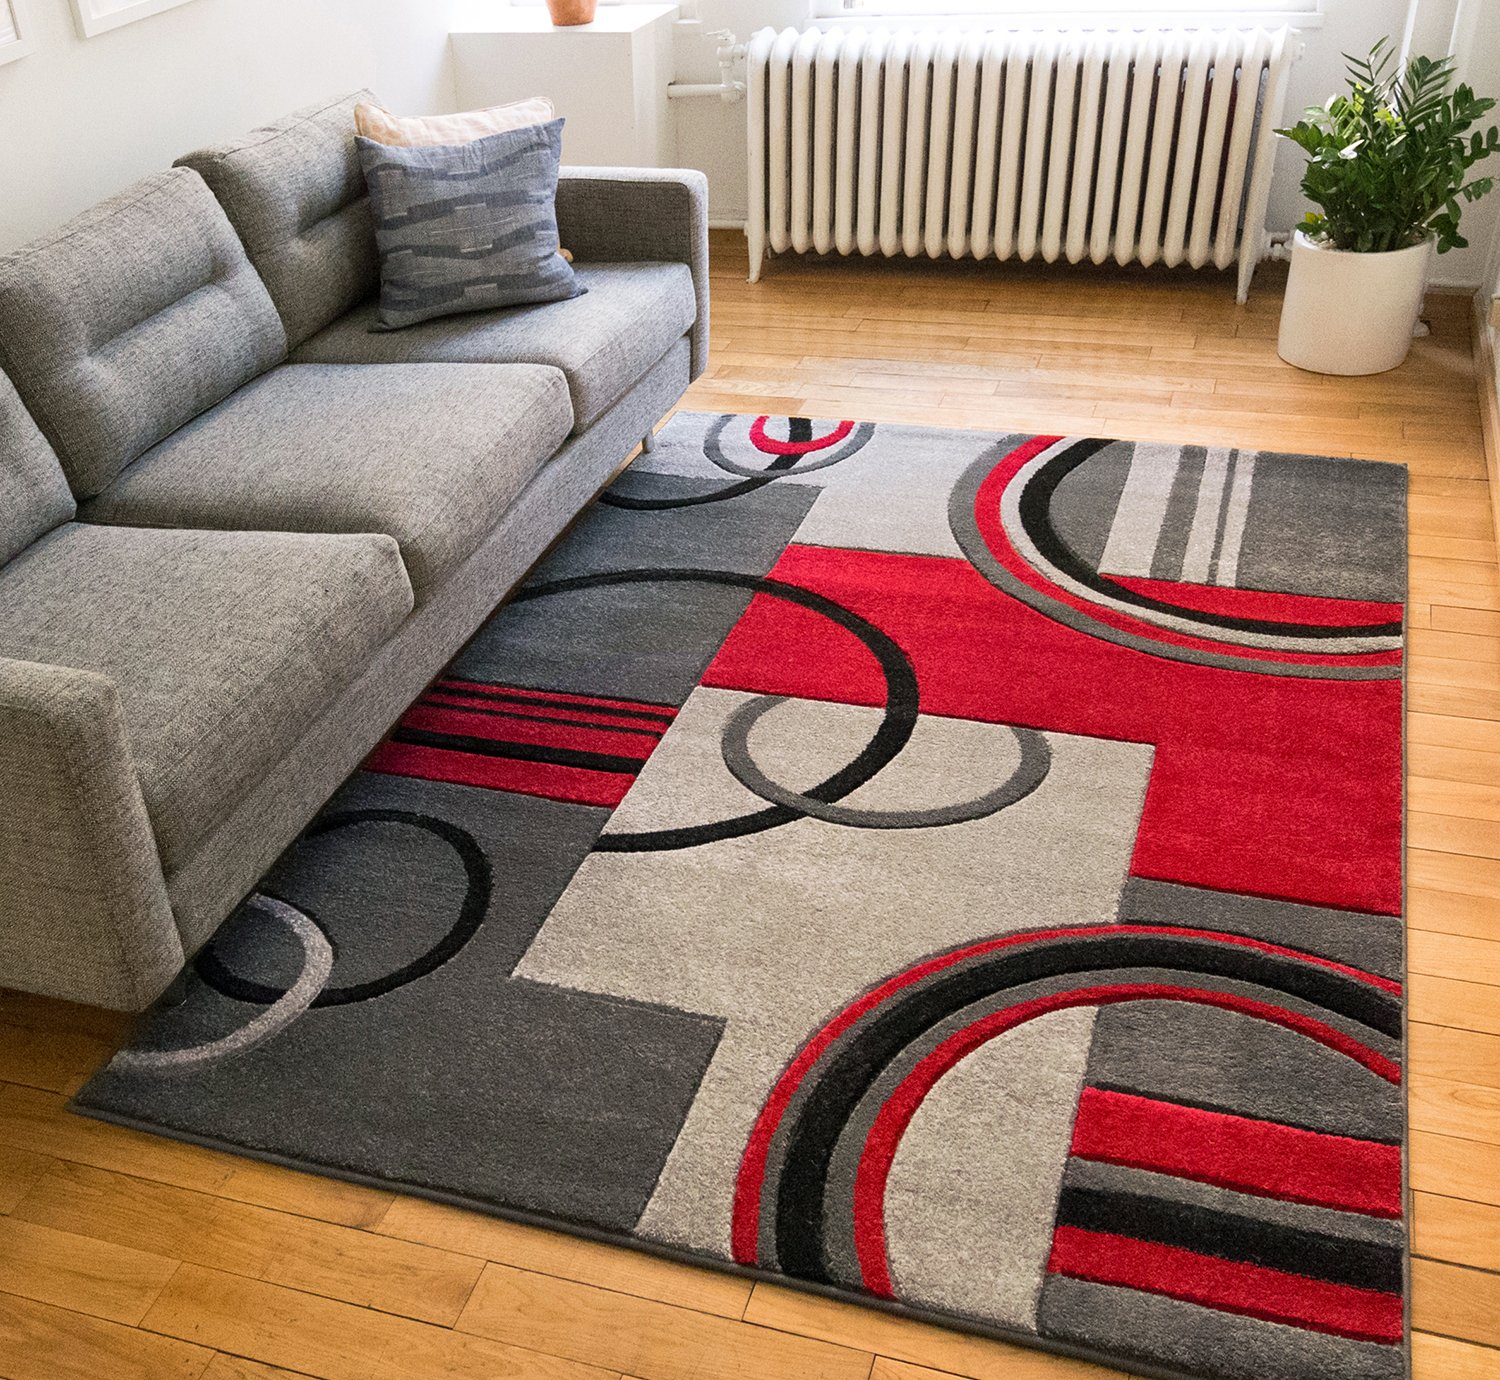 Area rug abstract contemporary echo shapes circles red for Red area rugs contemporary